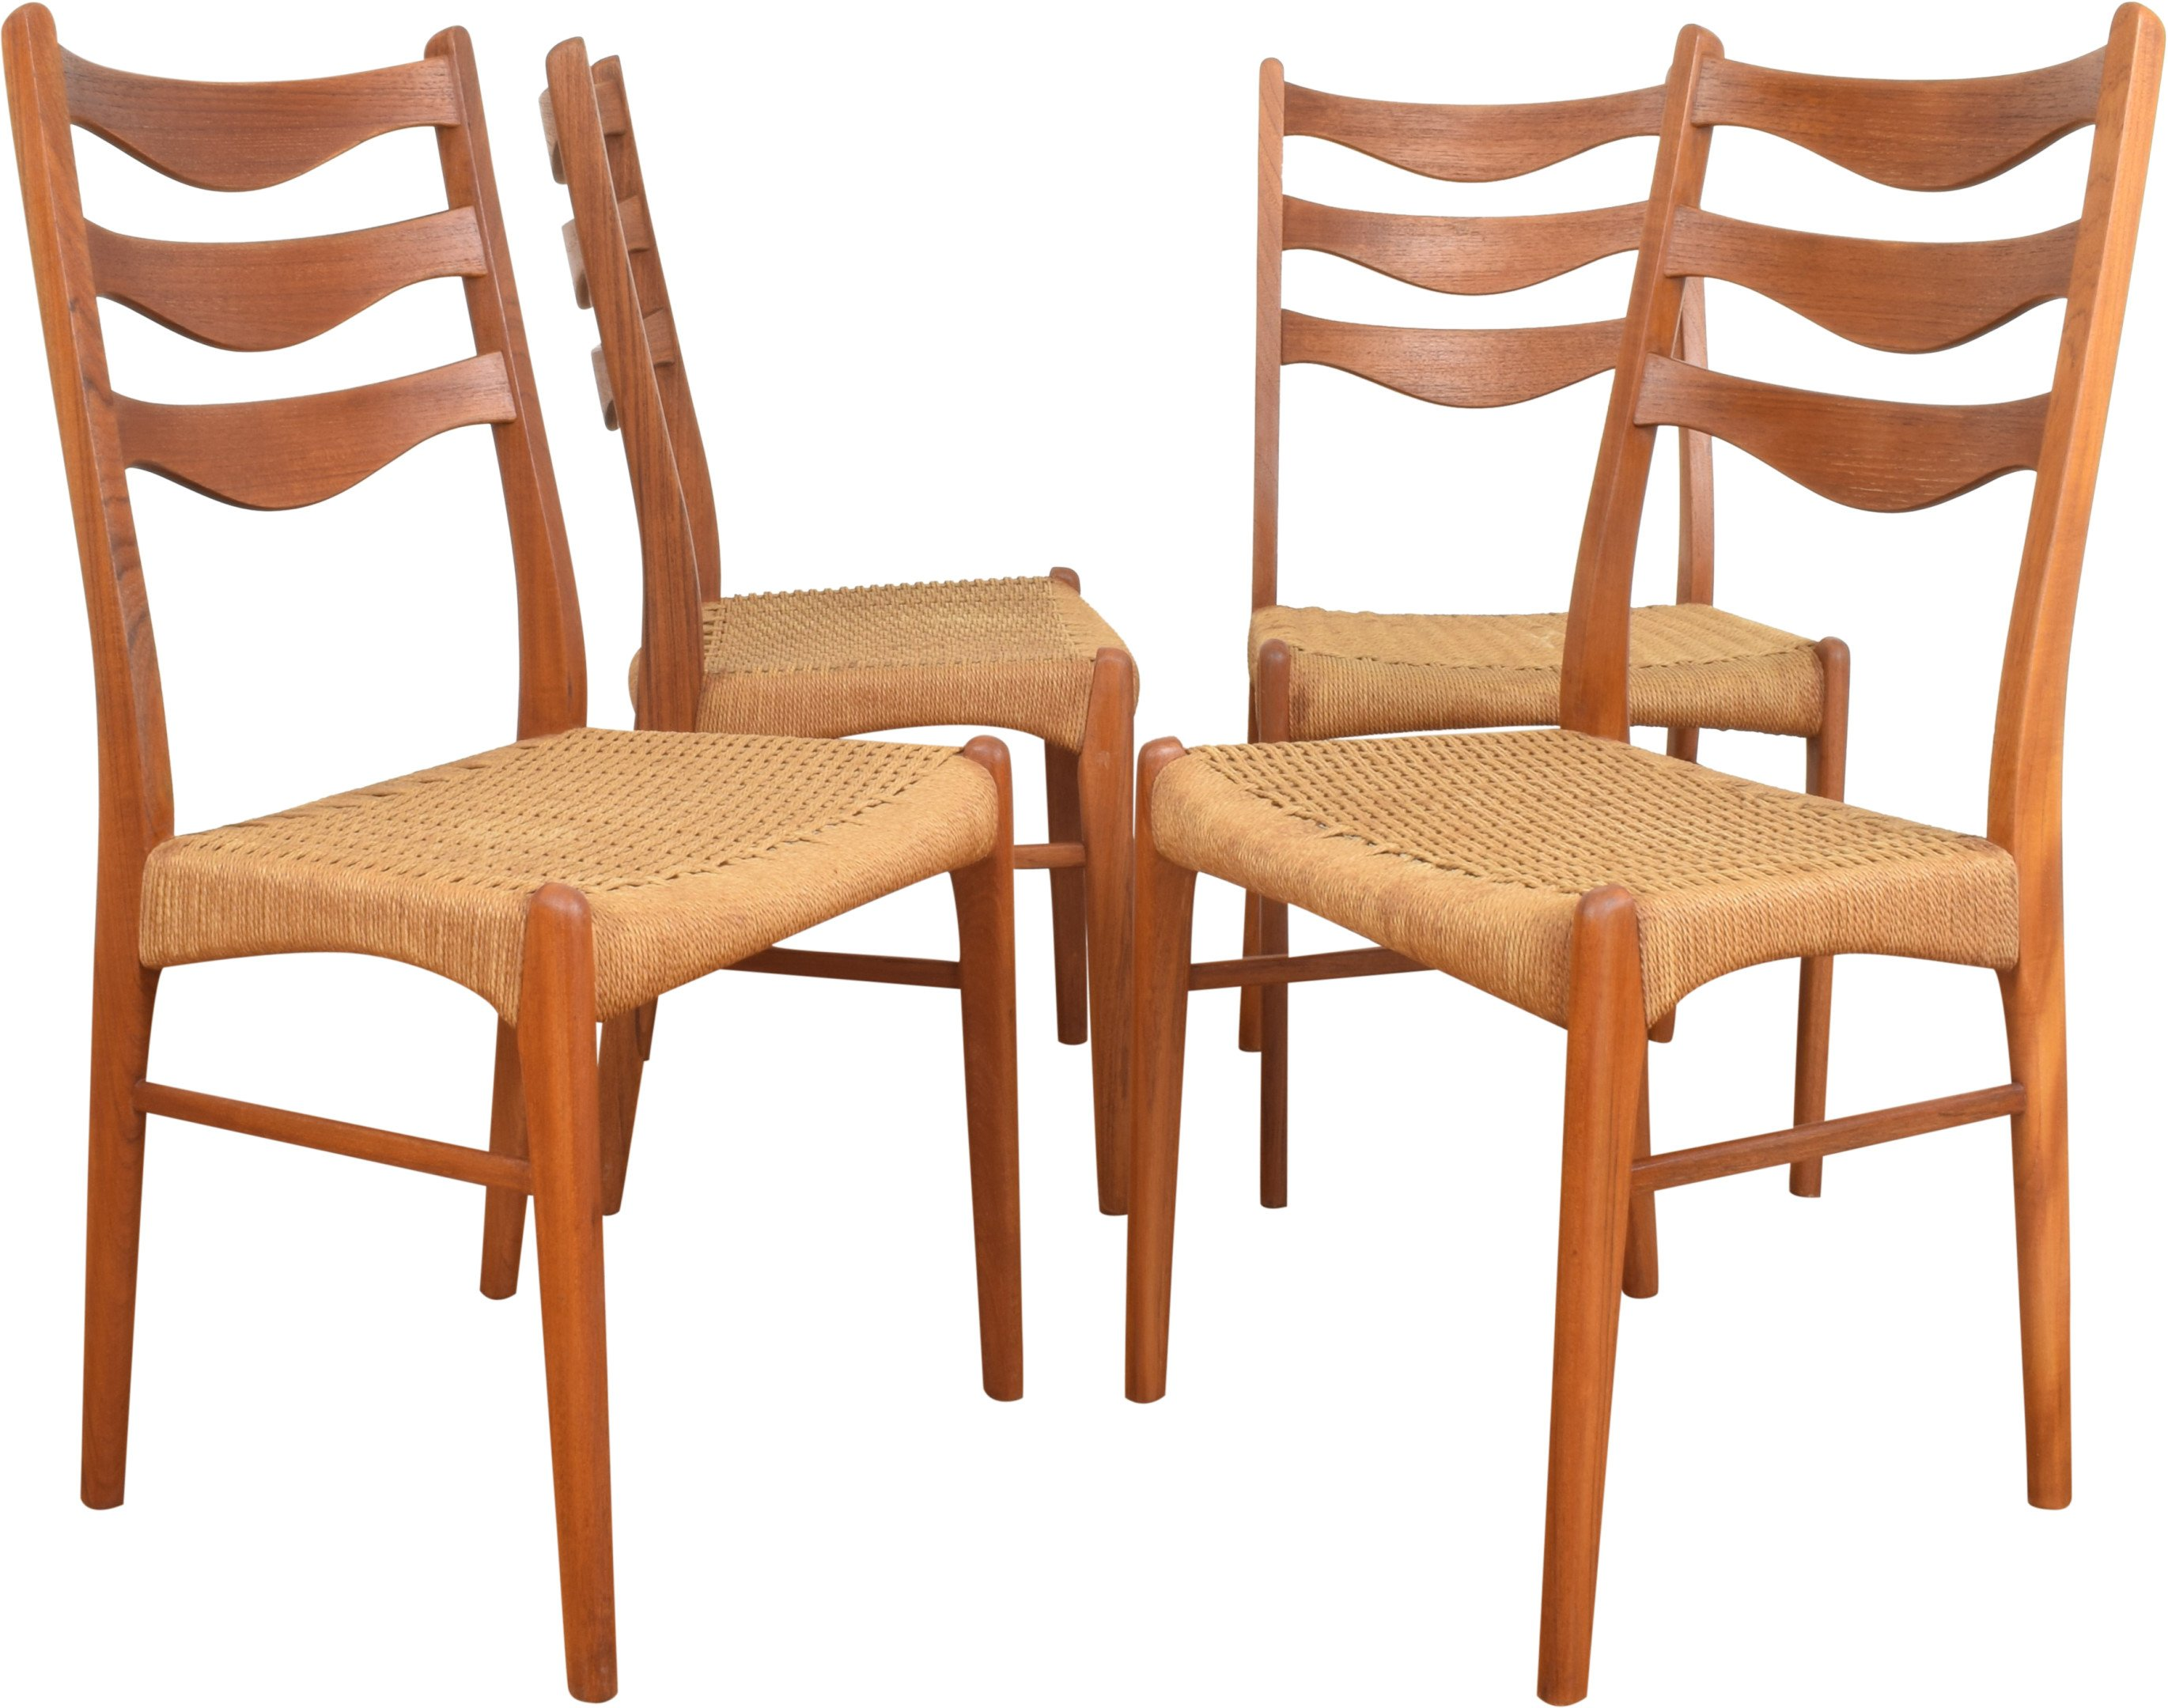 Set of Four Chairs by A. Wahl Iversen, Glyngøre Stolefabrik, Denmark, 1960s